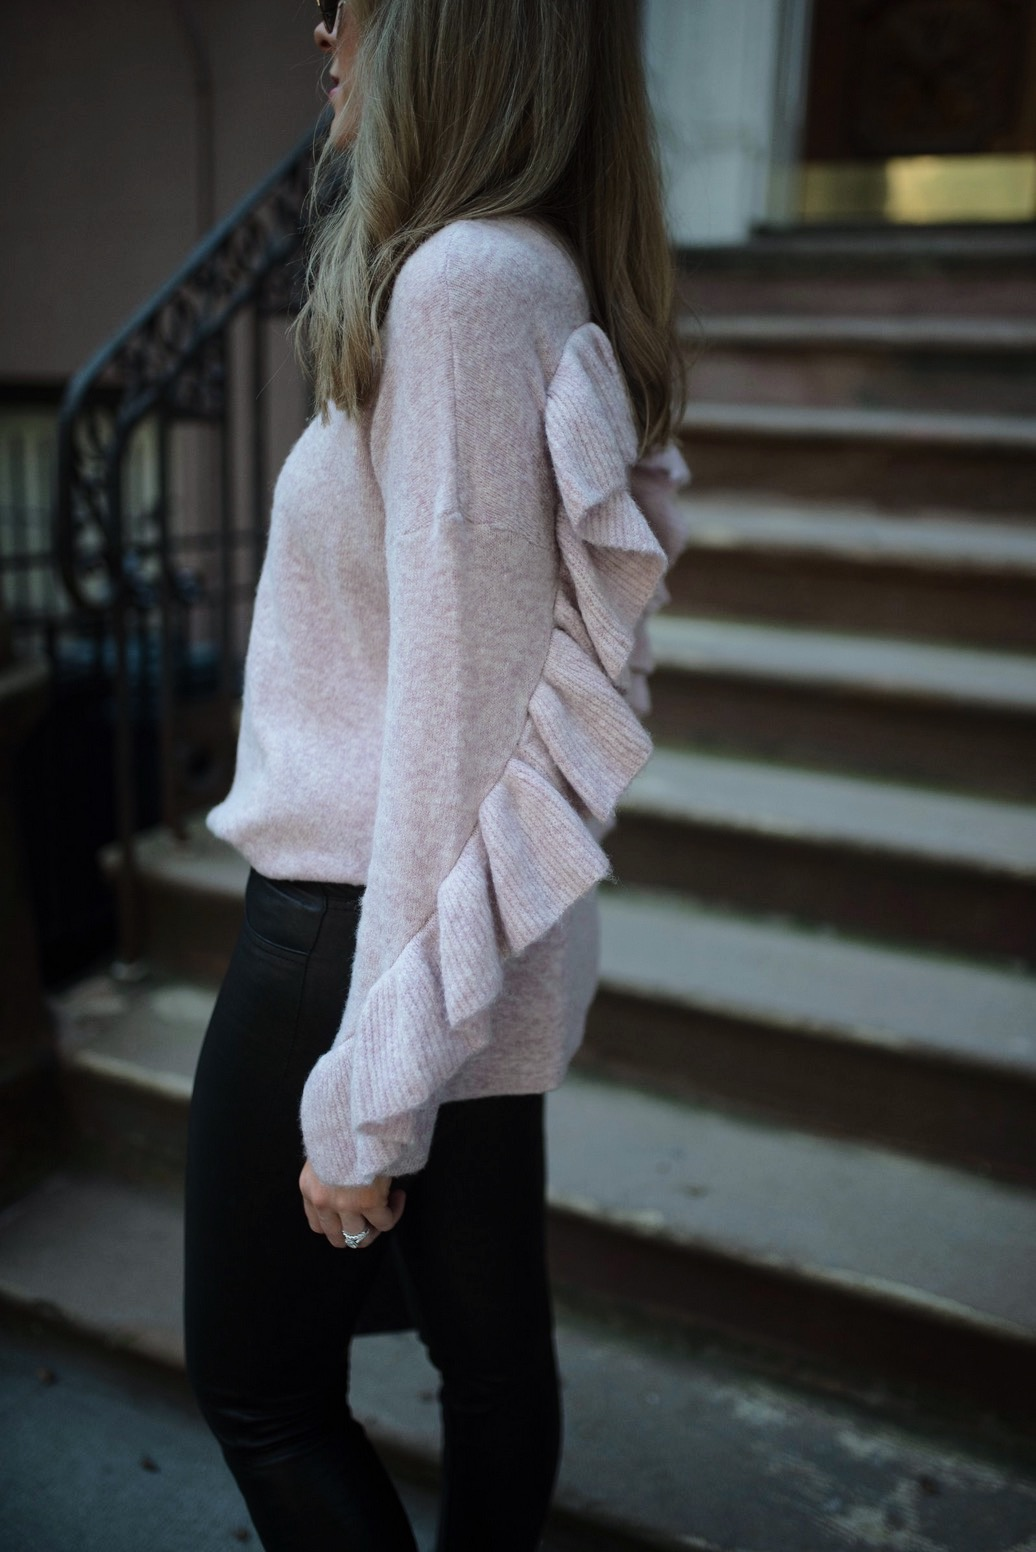 French-Connection-Blush-Sweater-Ruffles-j-brand-black-leather-pants-new-york-street-style-nyc-fashion-blogger-outfit-ideas-style-elixir-lauren-slade